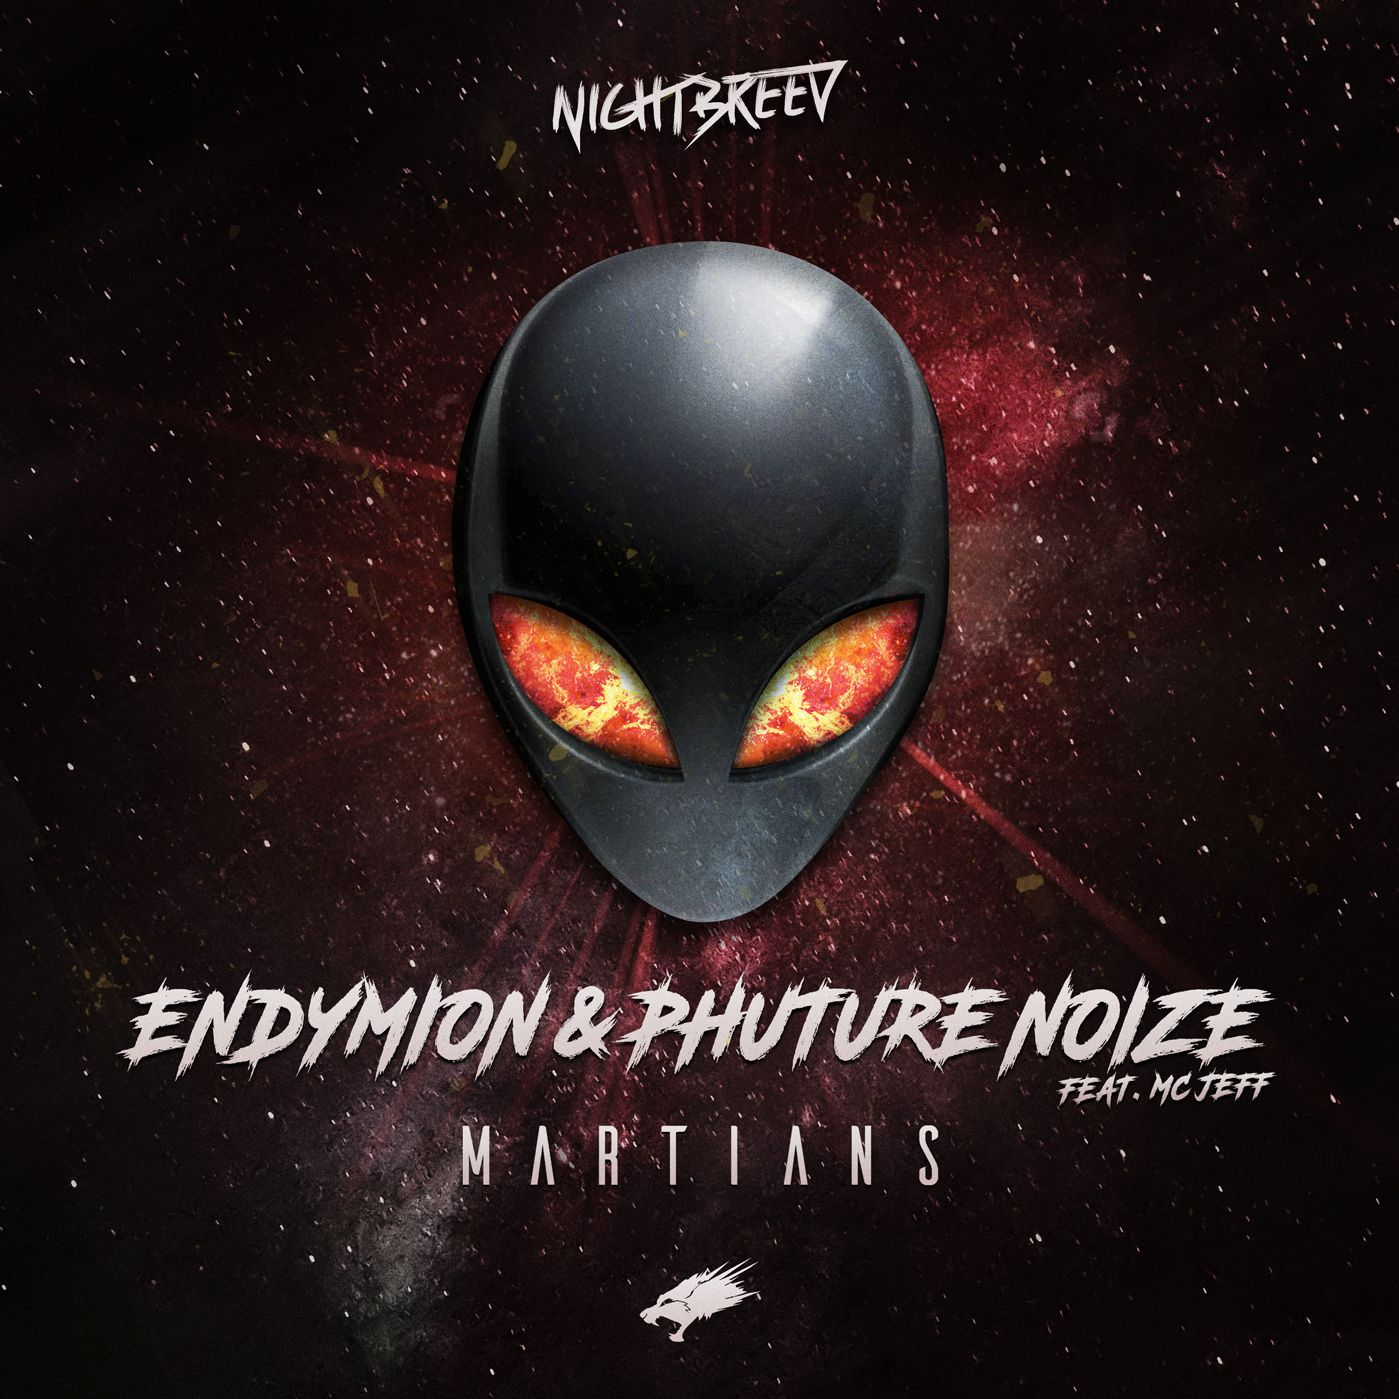 Endymion & Phuture Noize Feat MC Jeff - Martians [NIGHTBREED NOCTURNAL RECORDS] NBN02